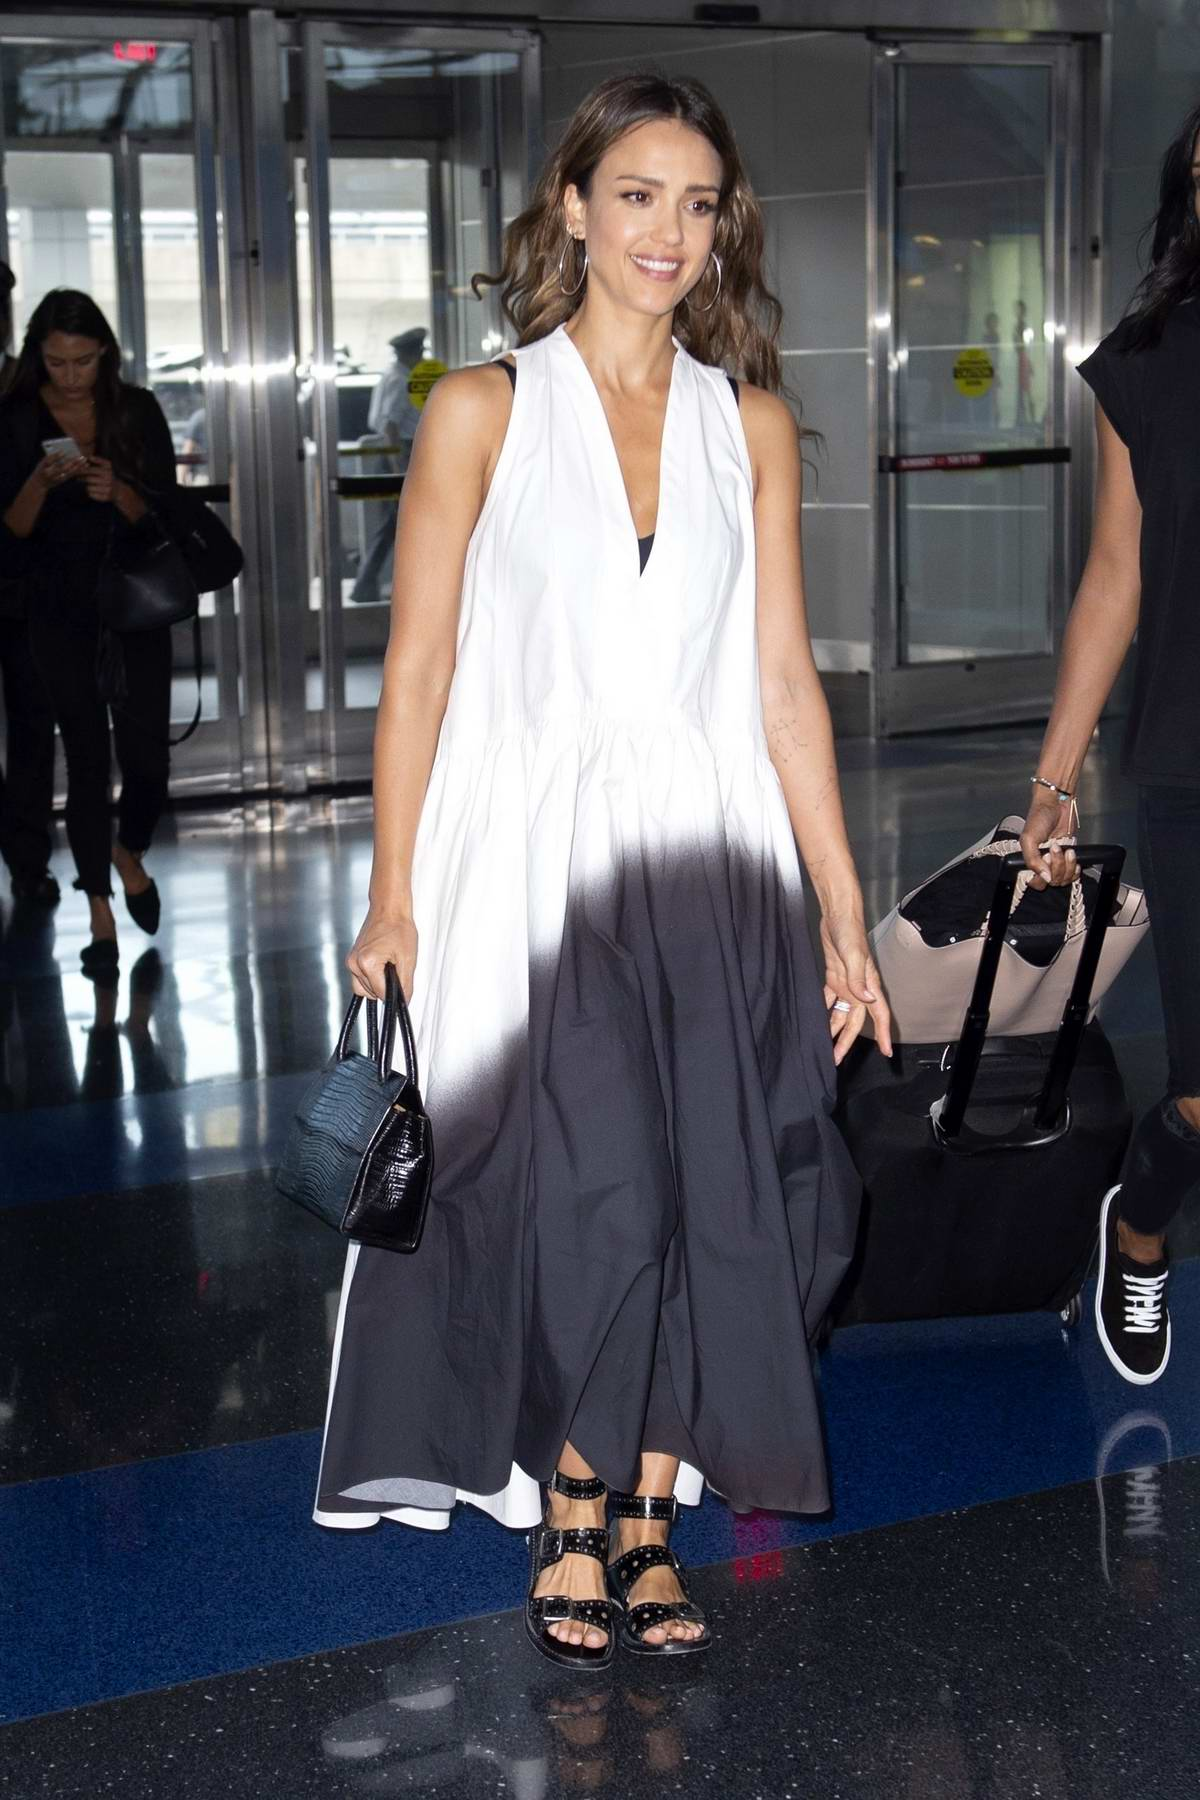 Jessica Alba looks stylish in a black and white ombre dress as she arrives at JFK Airport in New York City